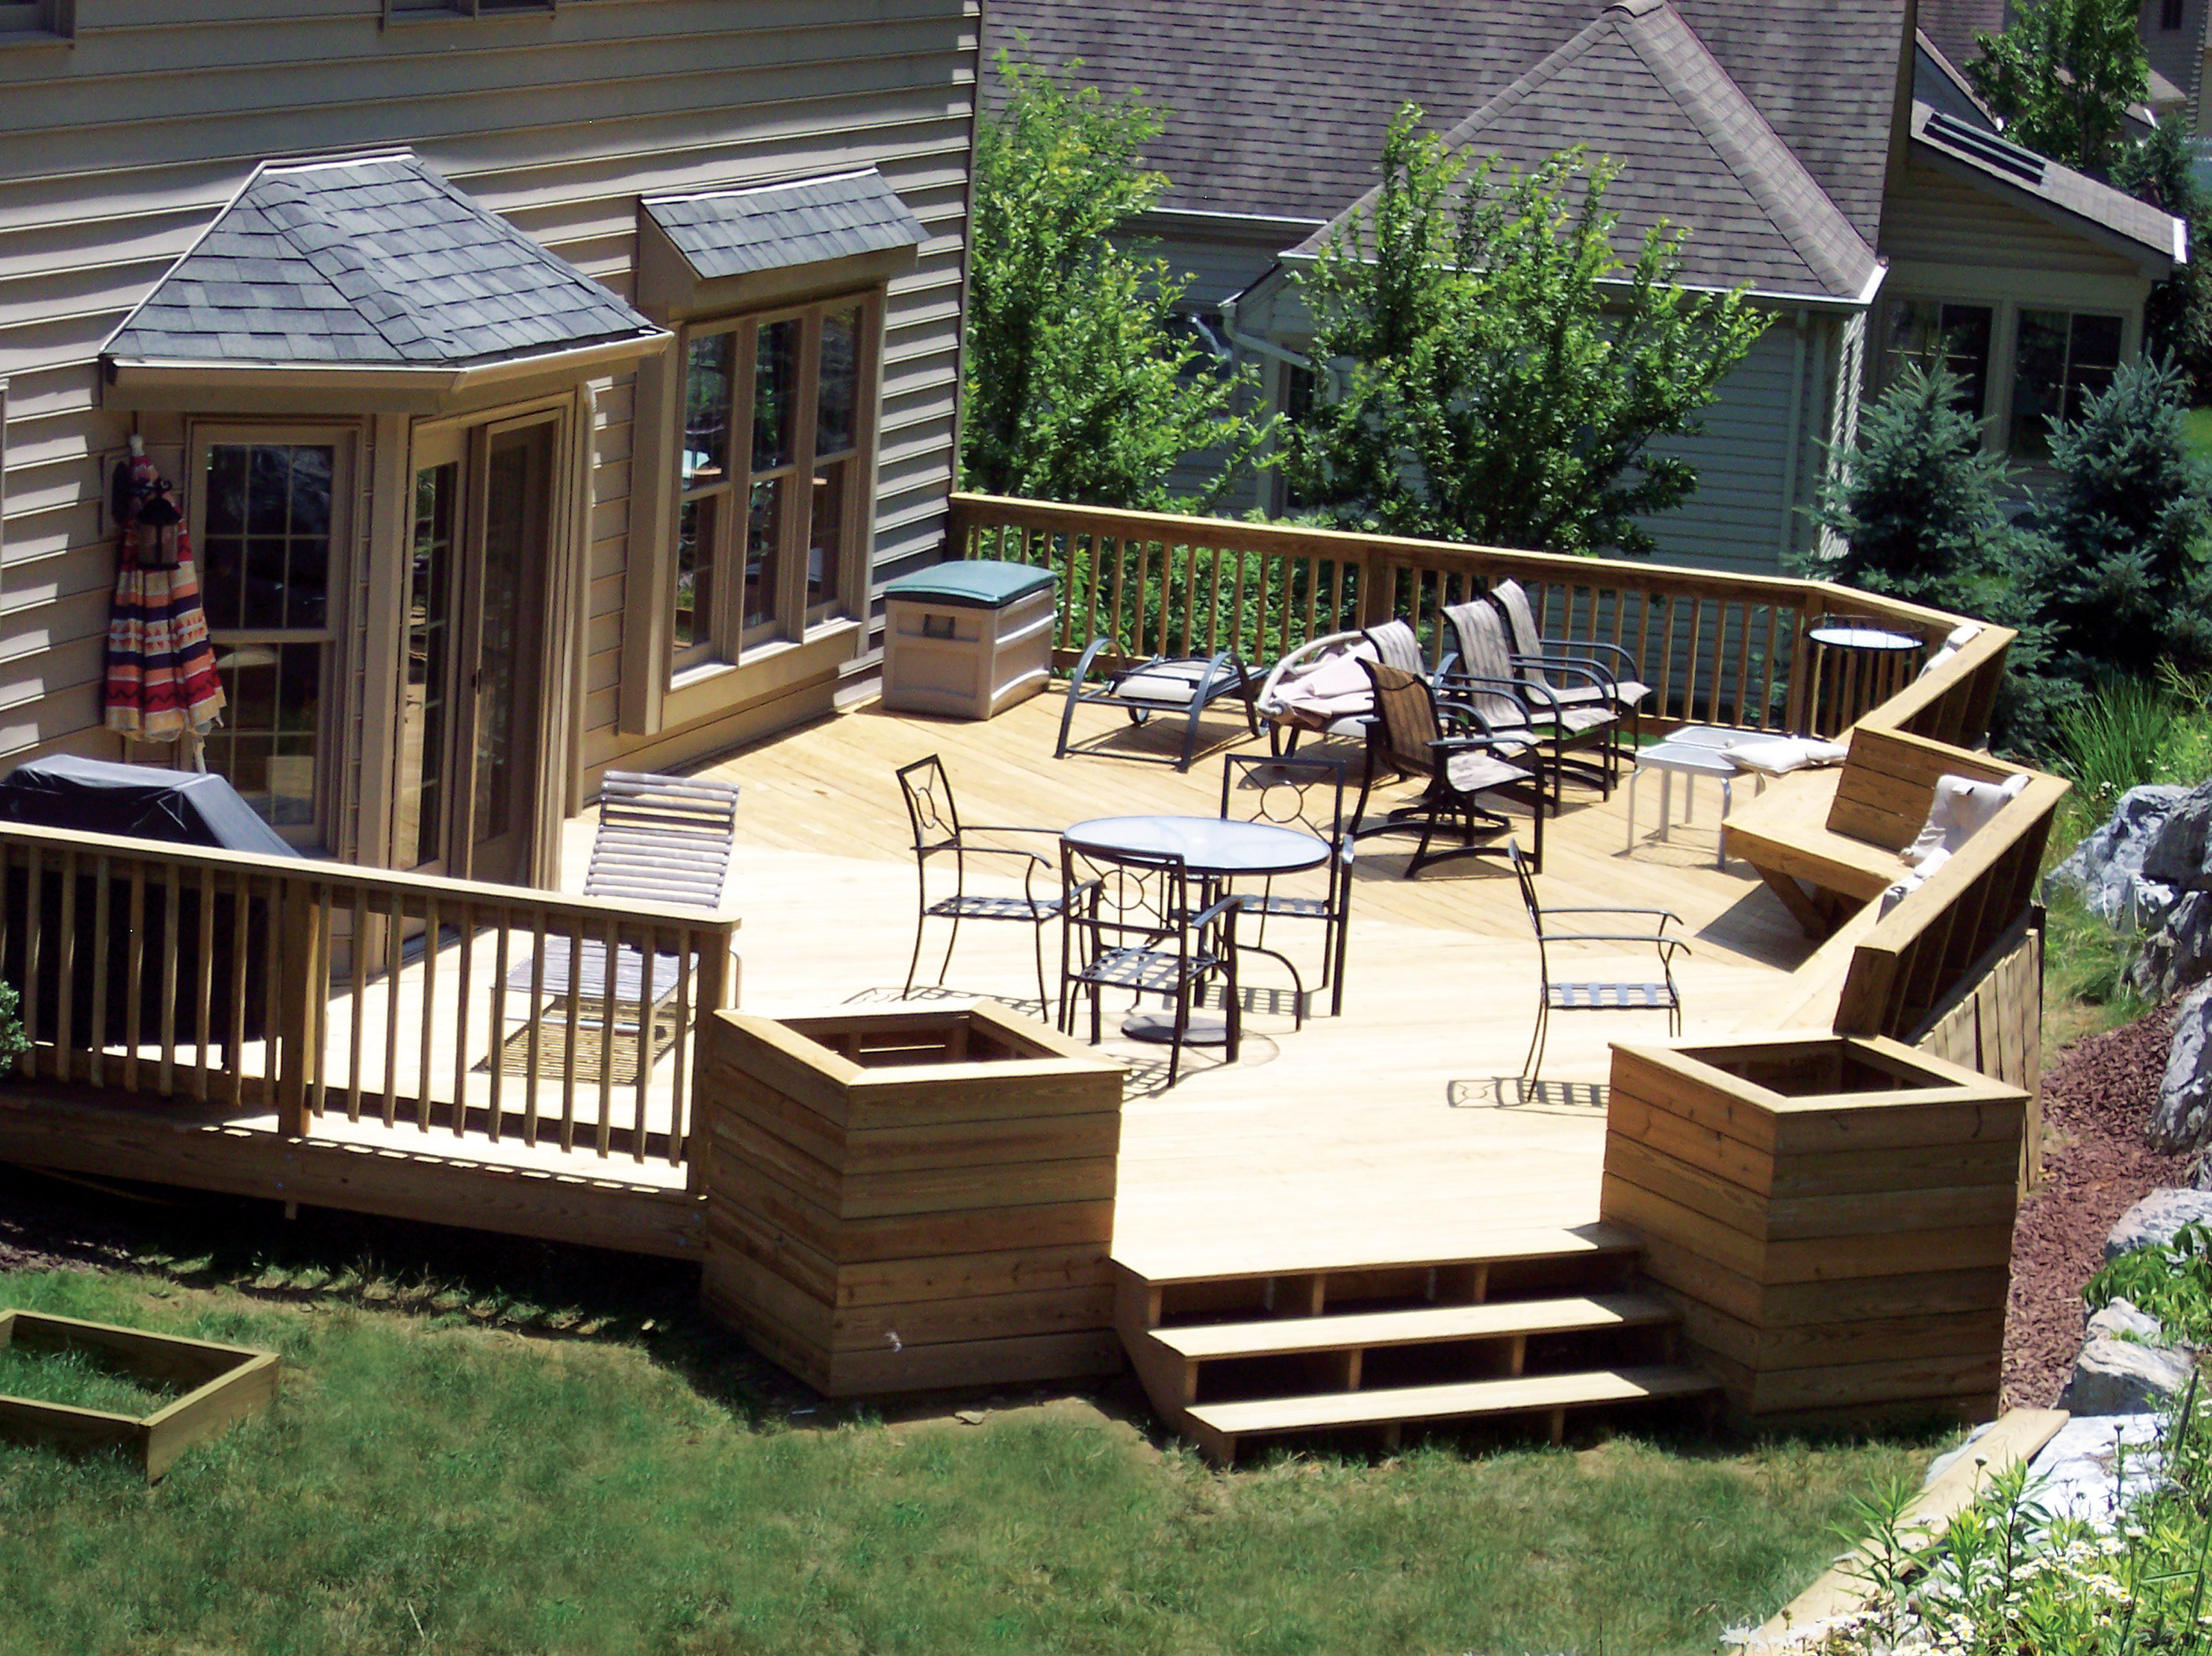 backyard decking ideas home deck designs homesfeed - Ideas For Deck Designs